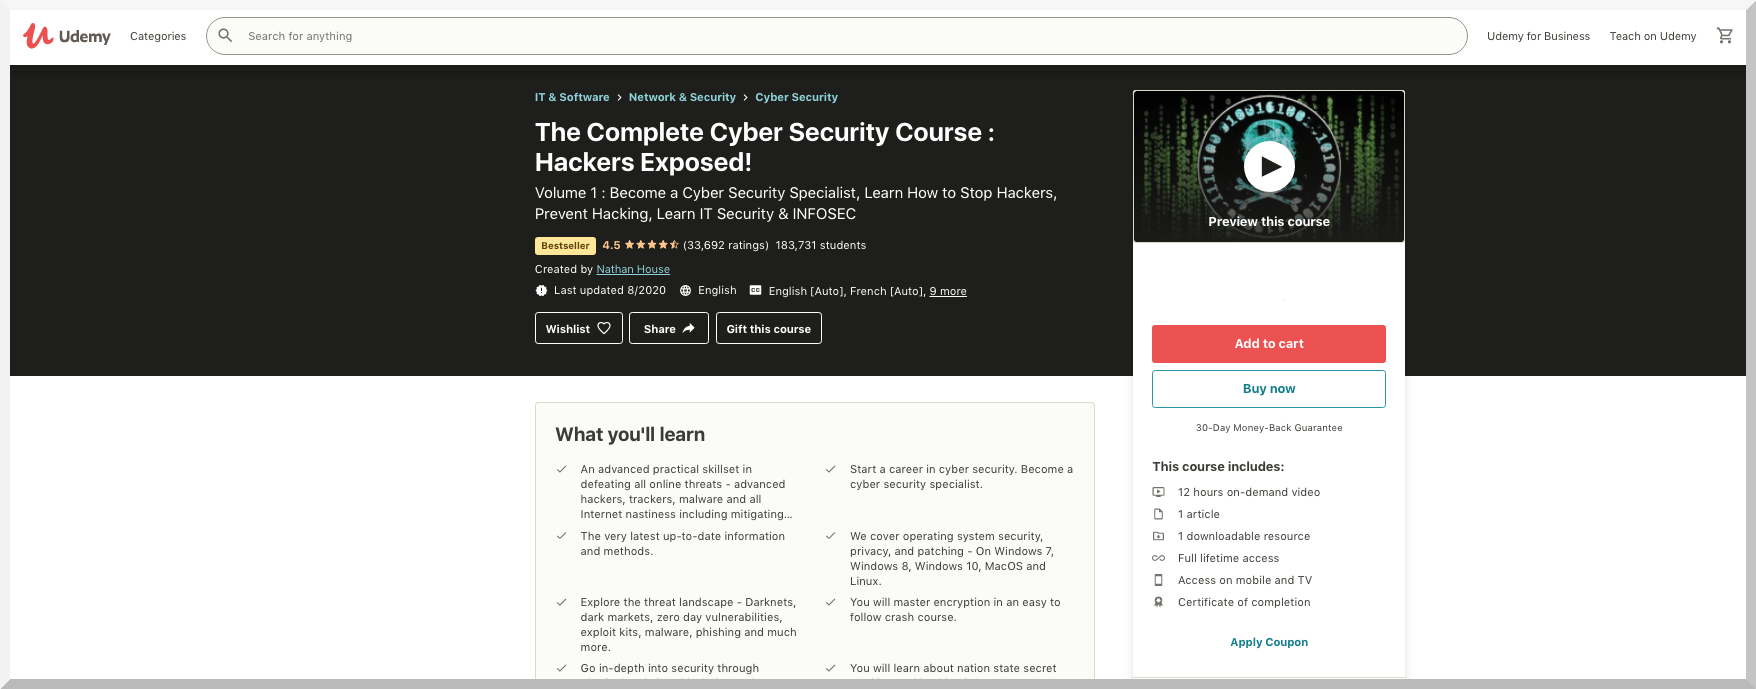 The Complete Cyber Security Course – Udemy